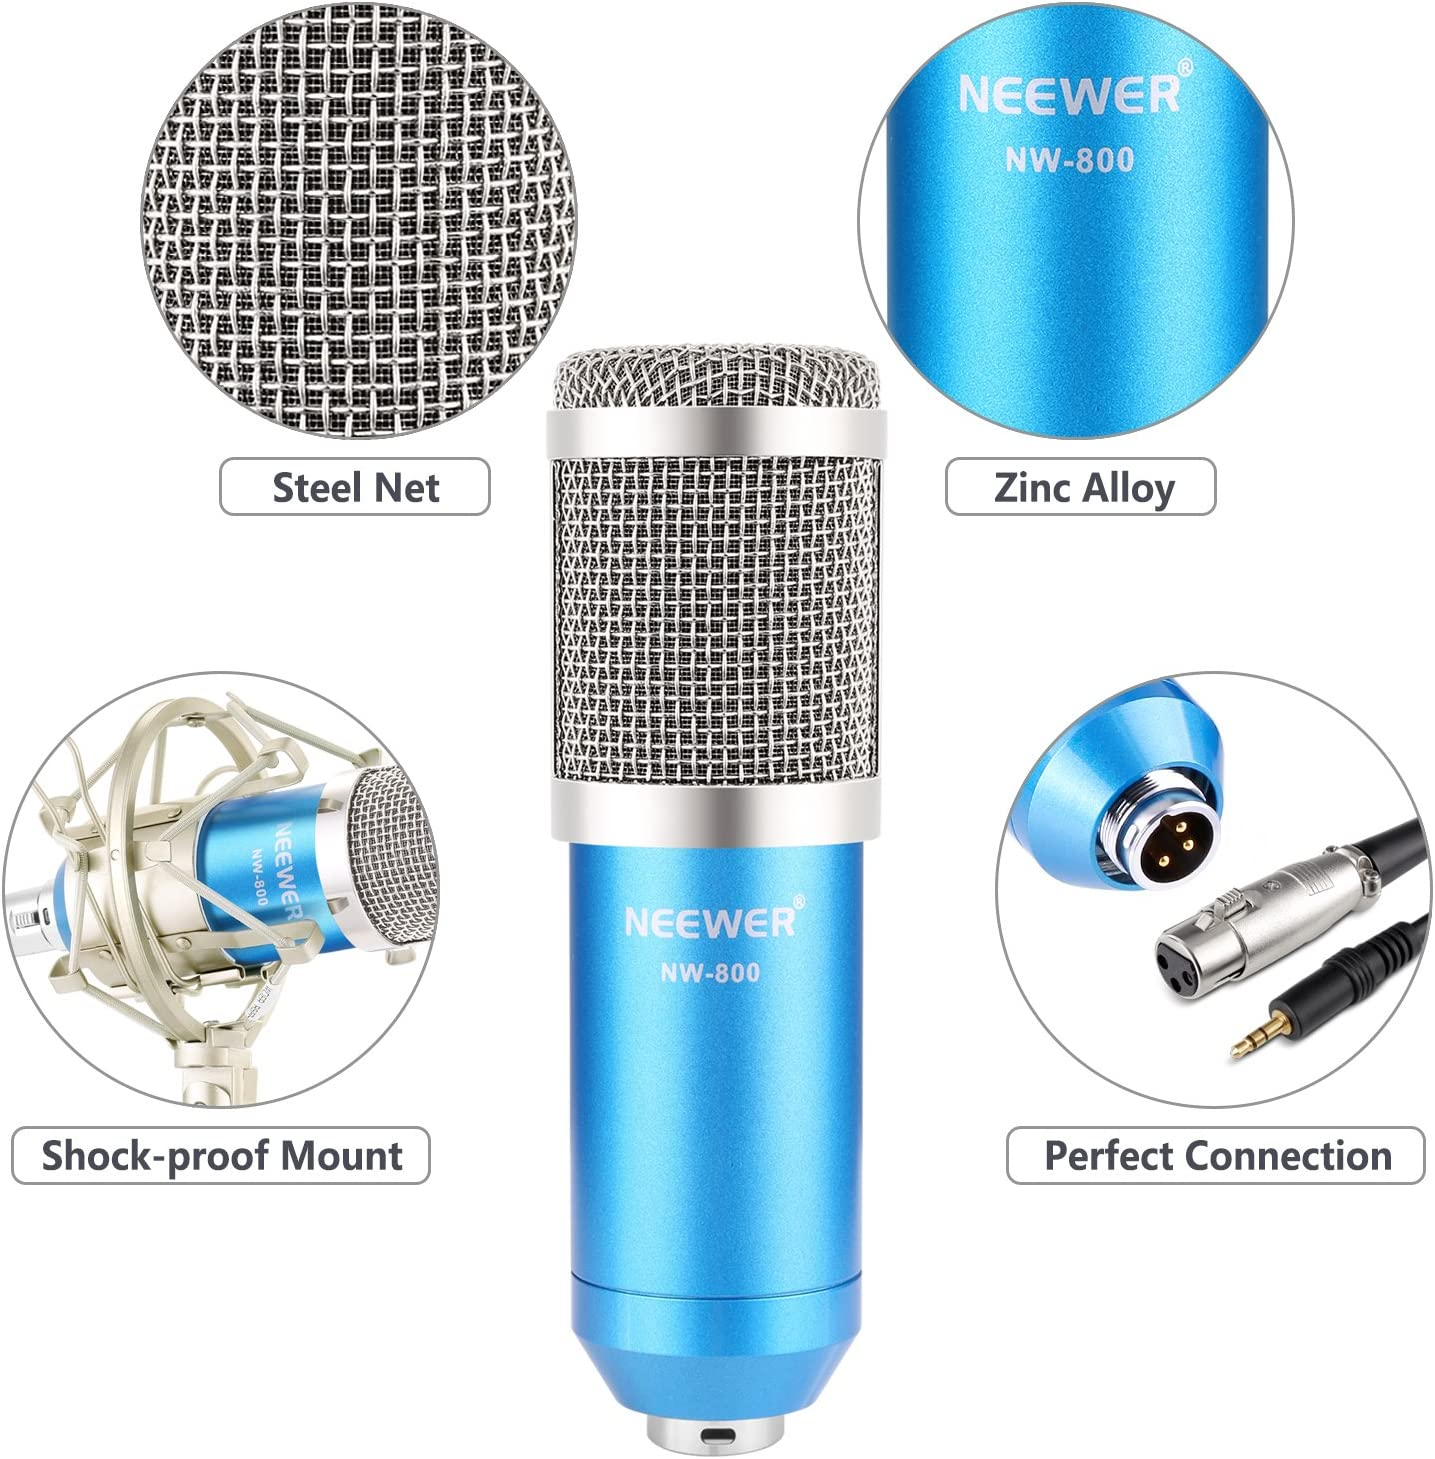 Portable Handheld Karaoke Mic with Speaker Phone Holder for Kids Adults Home Party for iPhone//Android//iPad//Sony//PC//Smartphone Neewer Wireless Bluetooth Karaoke Microphone Black+White